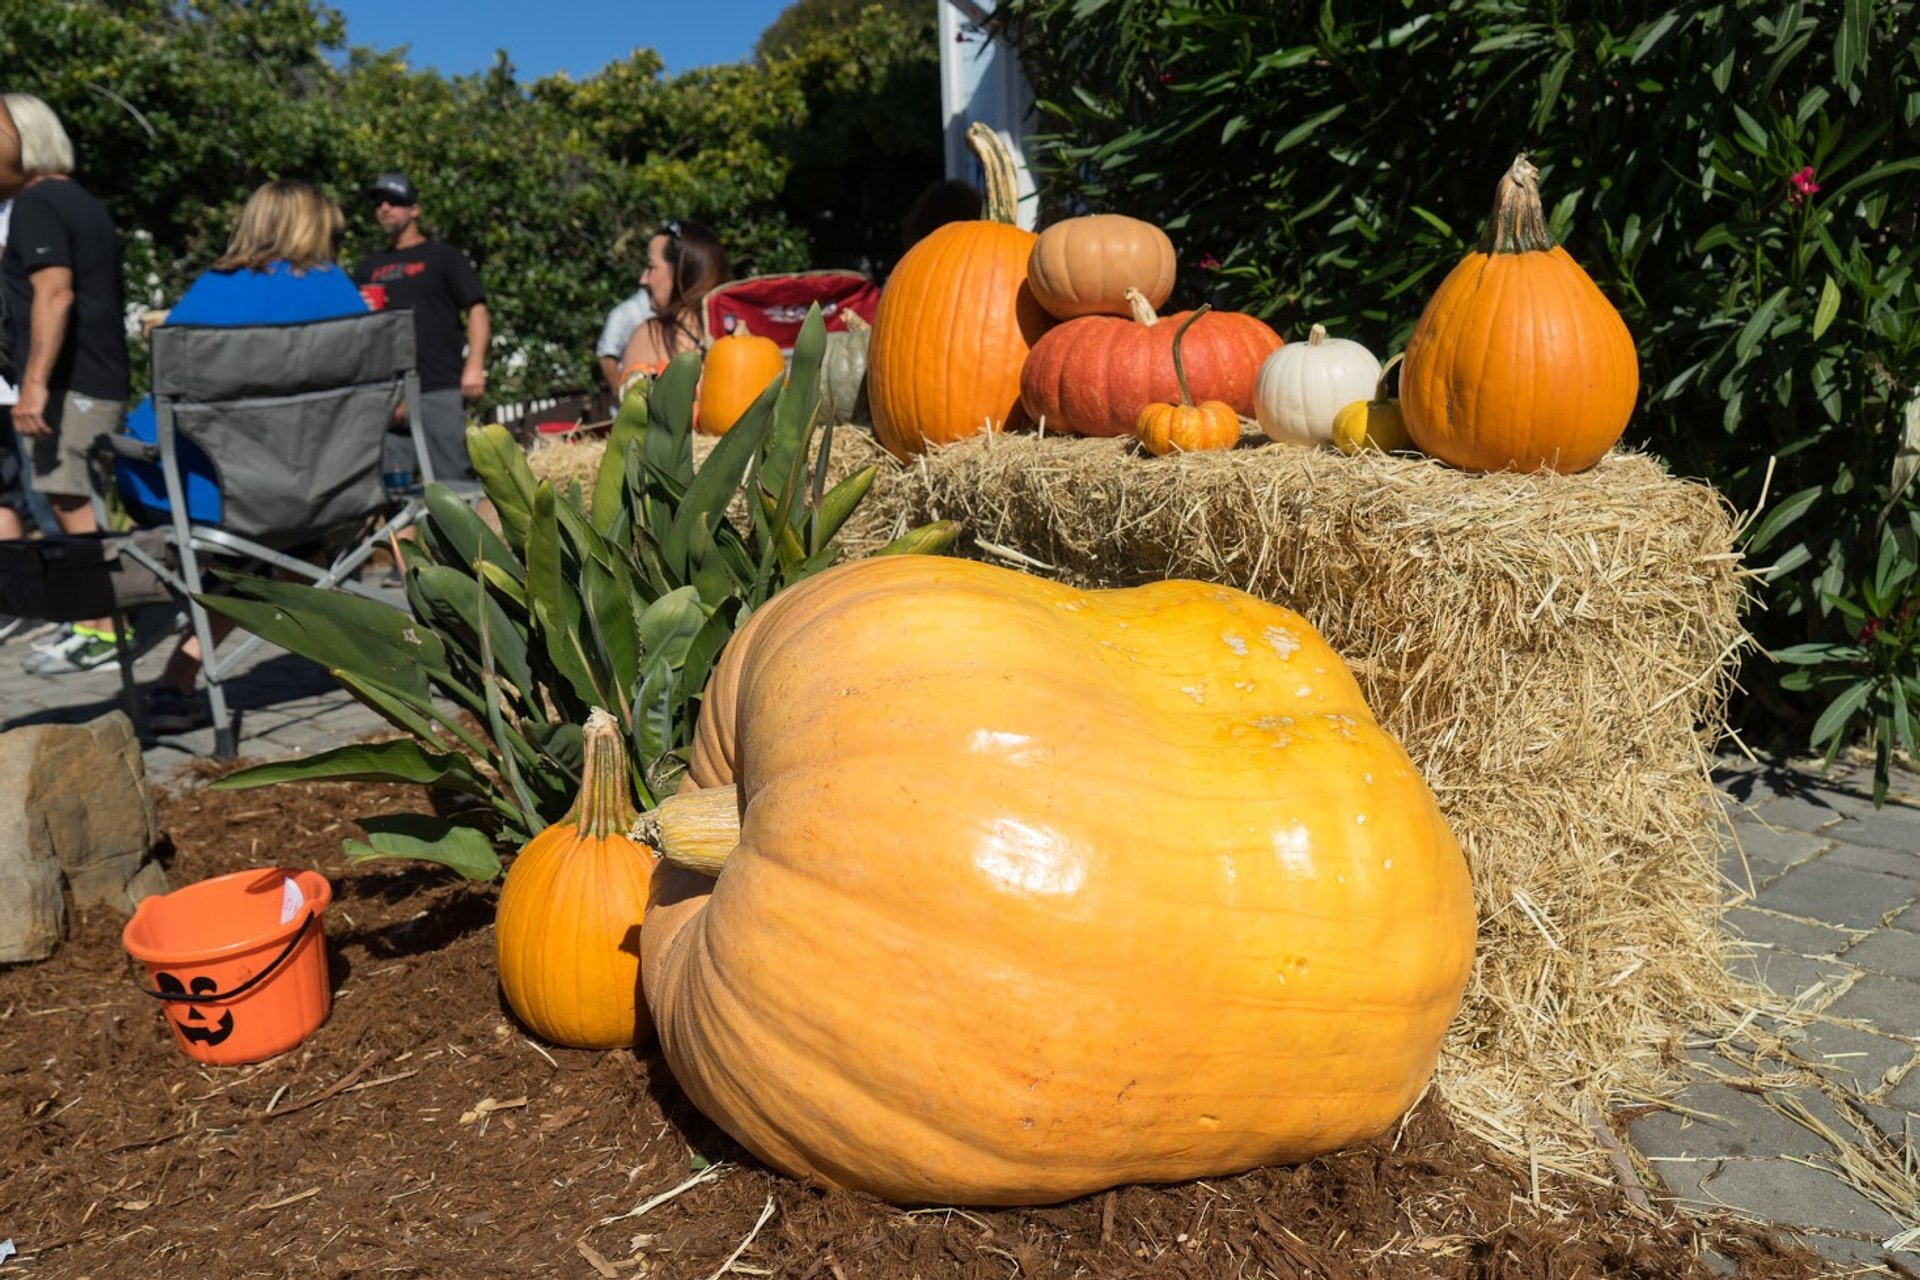 Best time to see Half Moon Bay Pumpkin Festival 2020